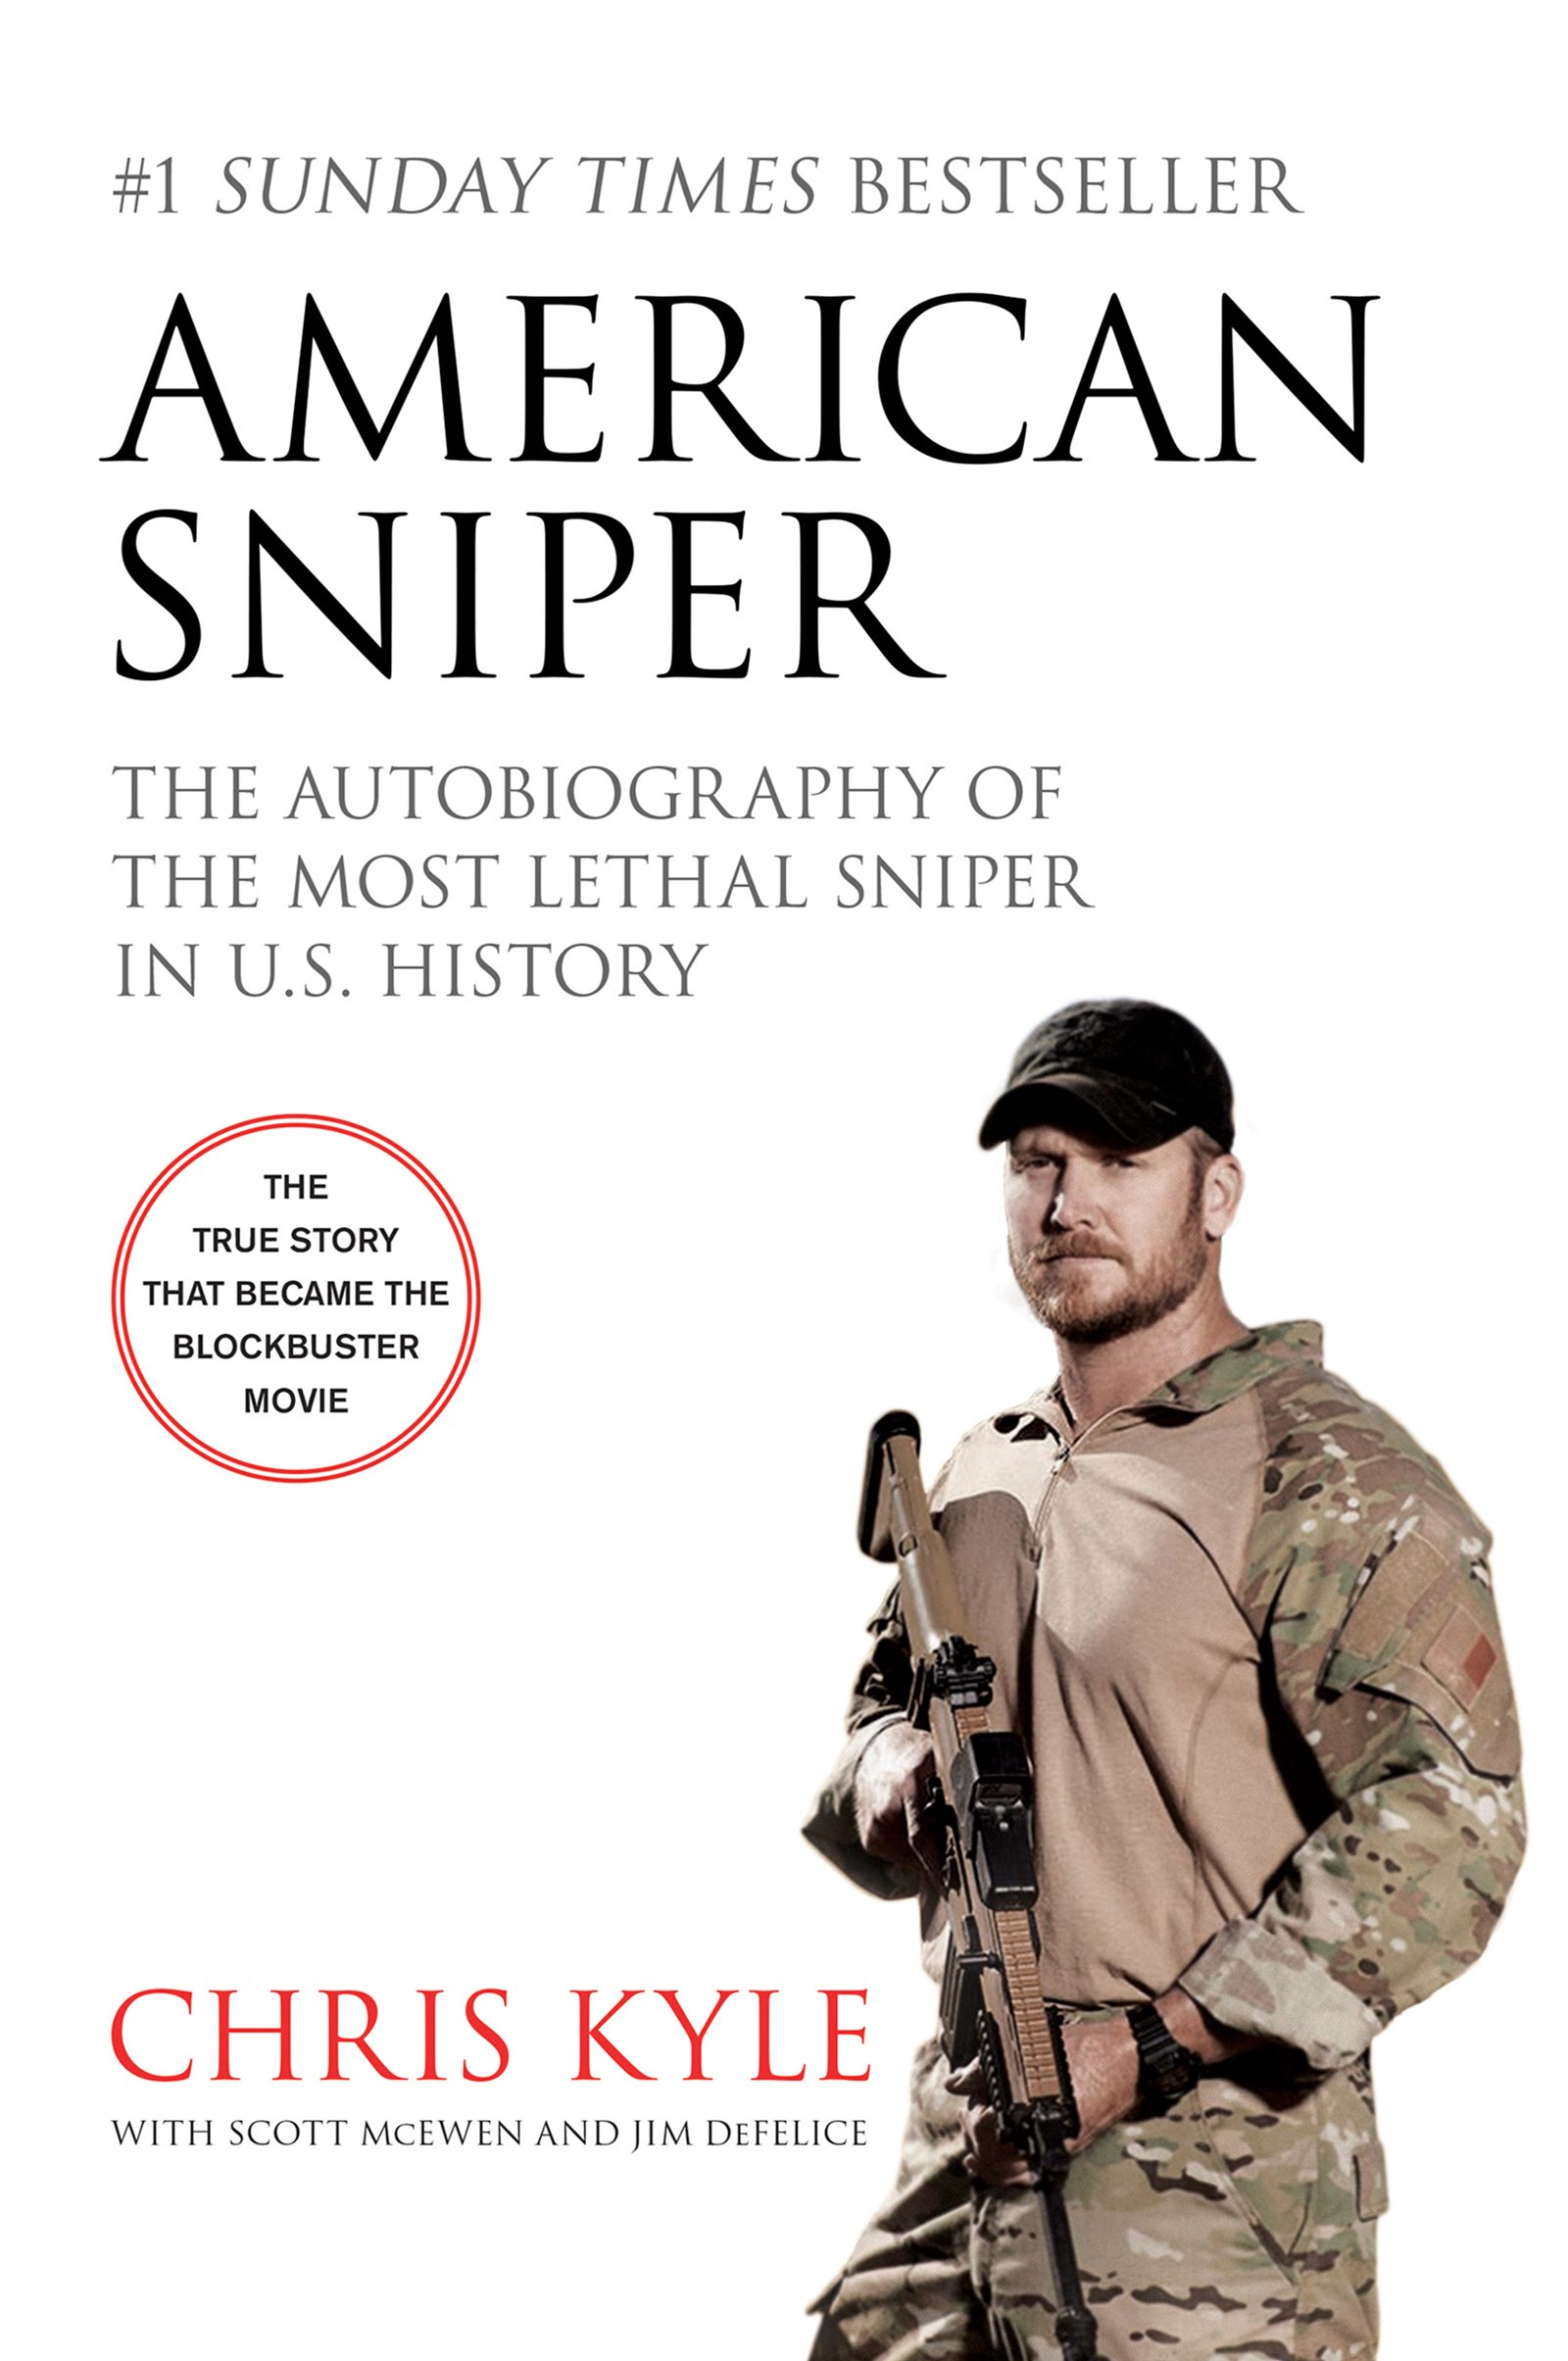 American Sniper [Film Tie-in Edition] : The Autobiography of the Most Lethal Sniper in U.S. Military History